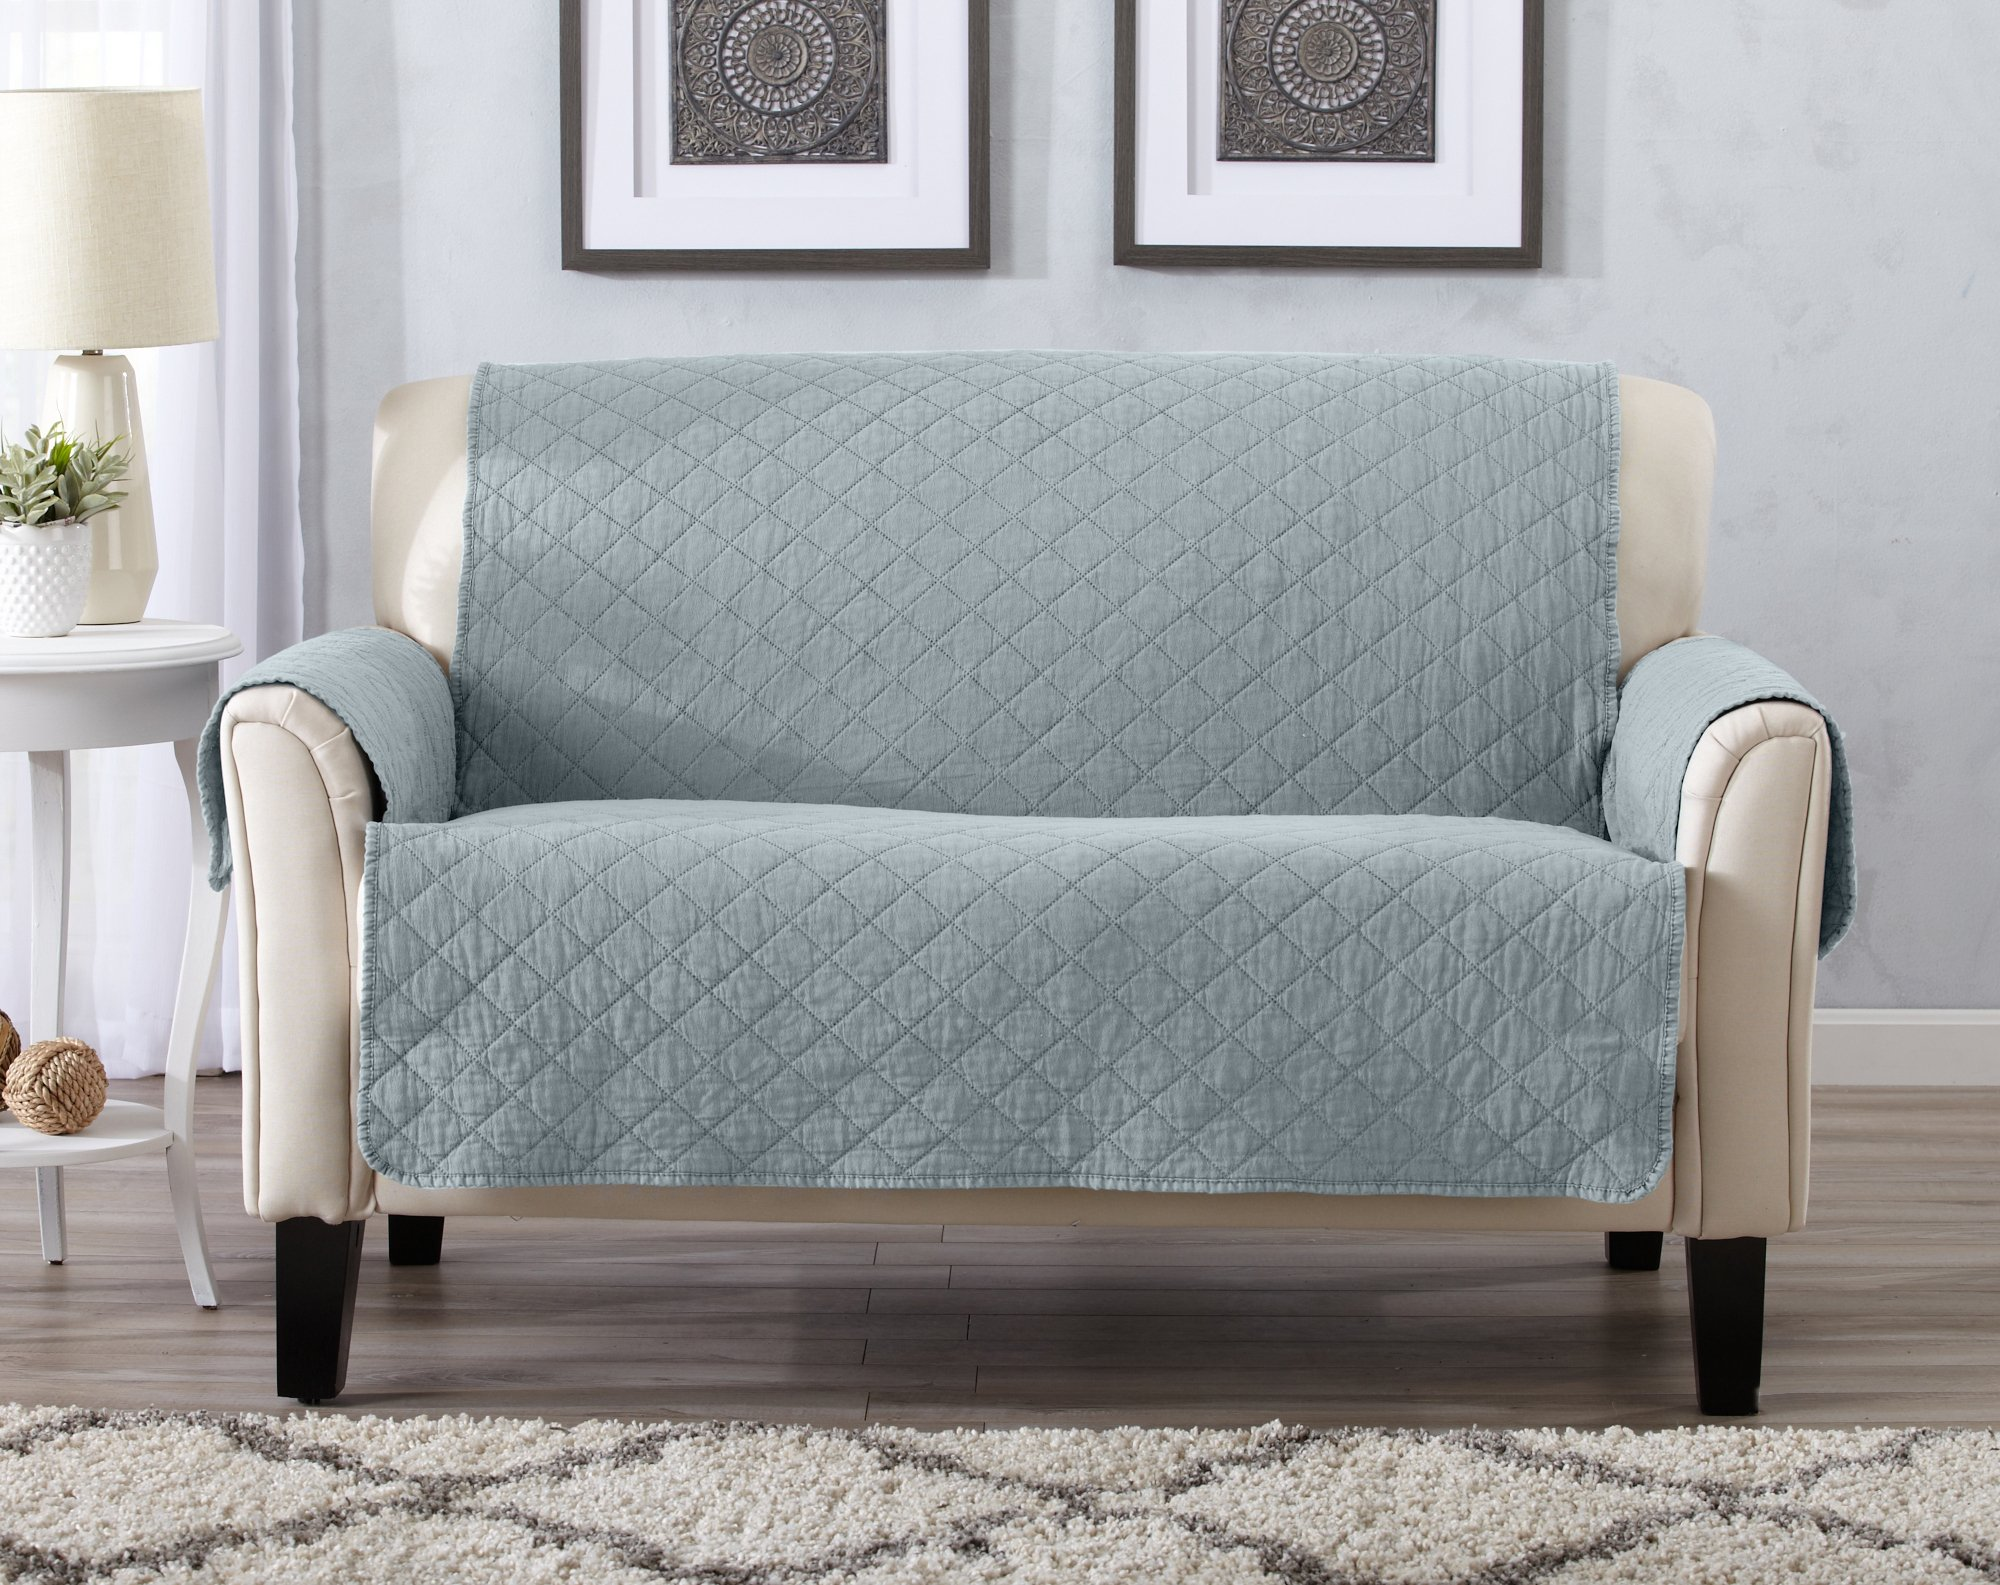 Deluxe Stonewashed Stain Resistant Furniture Protector in Solid Colors. Laurina Collection By Great Bay Home Brand. (Loveseat, Blue Dust)72'' x 88'' by Great Bay Home